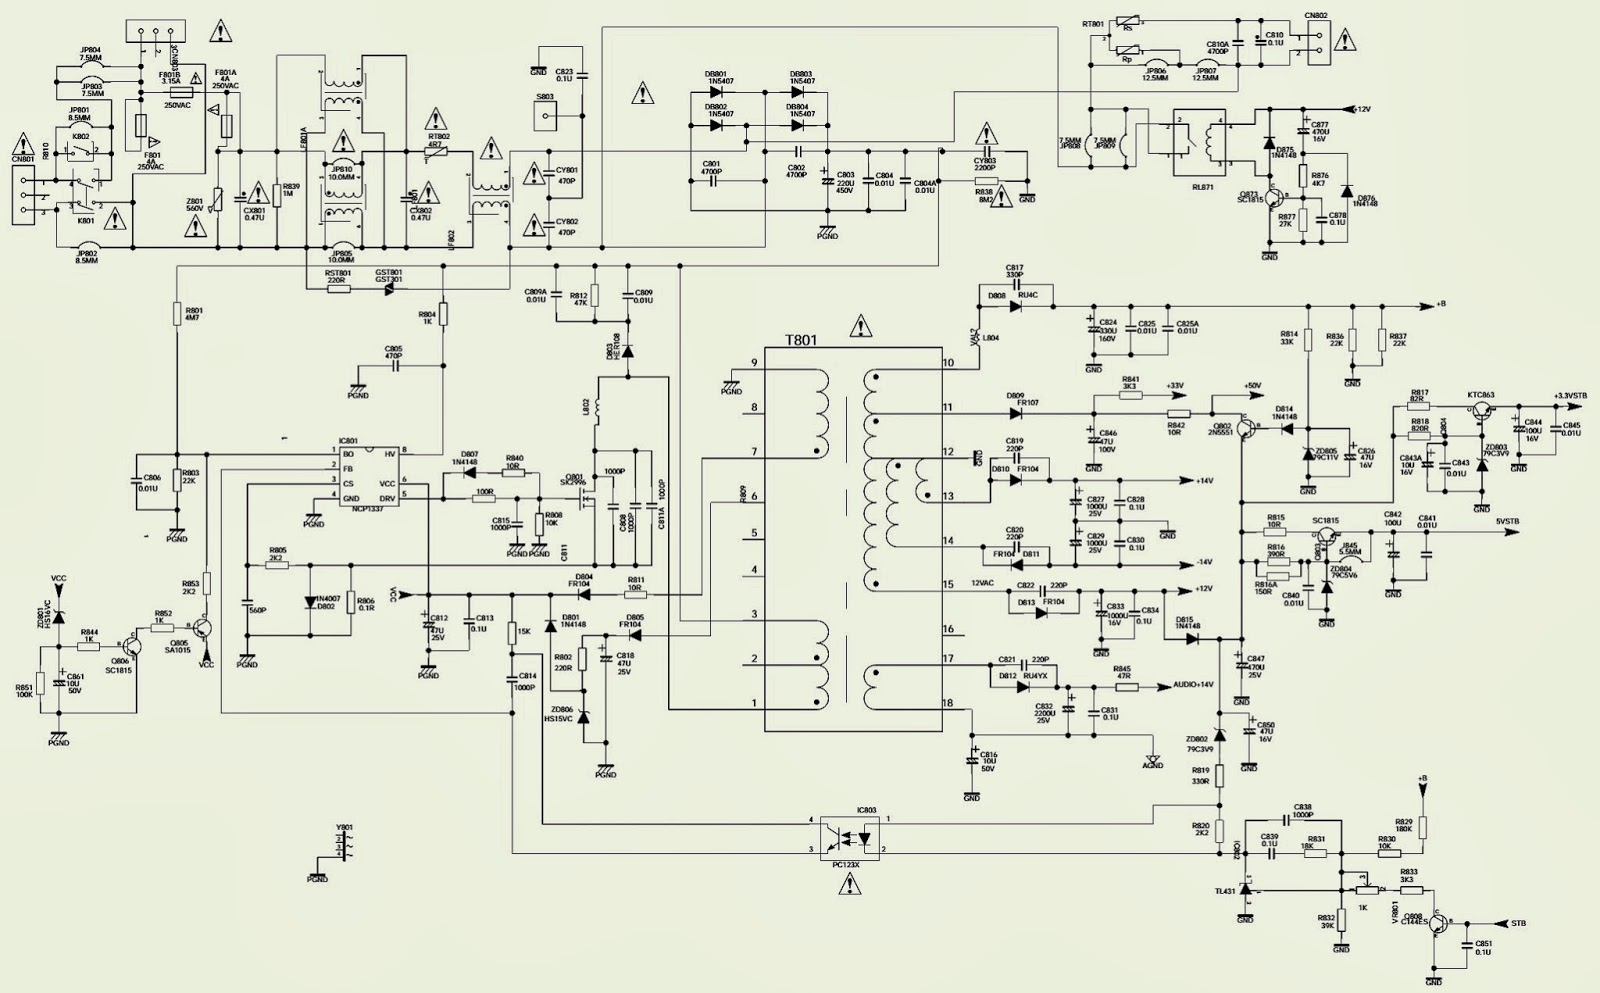 Schematic Diagram For Proscan Tv in addition Fender Narrow Panel Tweed Ch as well Electronic schematic likewise Preselector For Sw Receivers likewise Sharp Am400 Digital Copier Printer. on tv circuit schematics